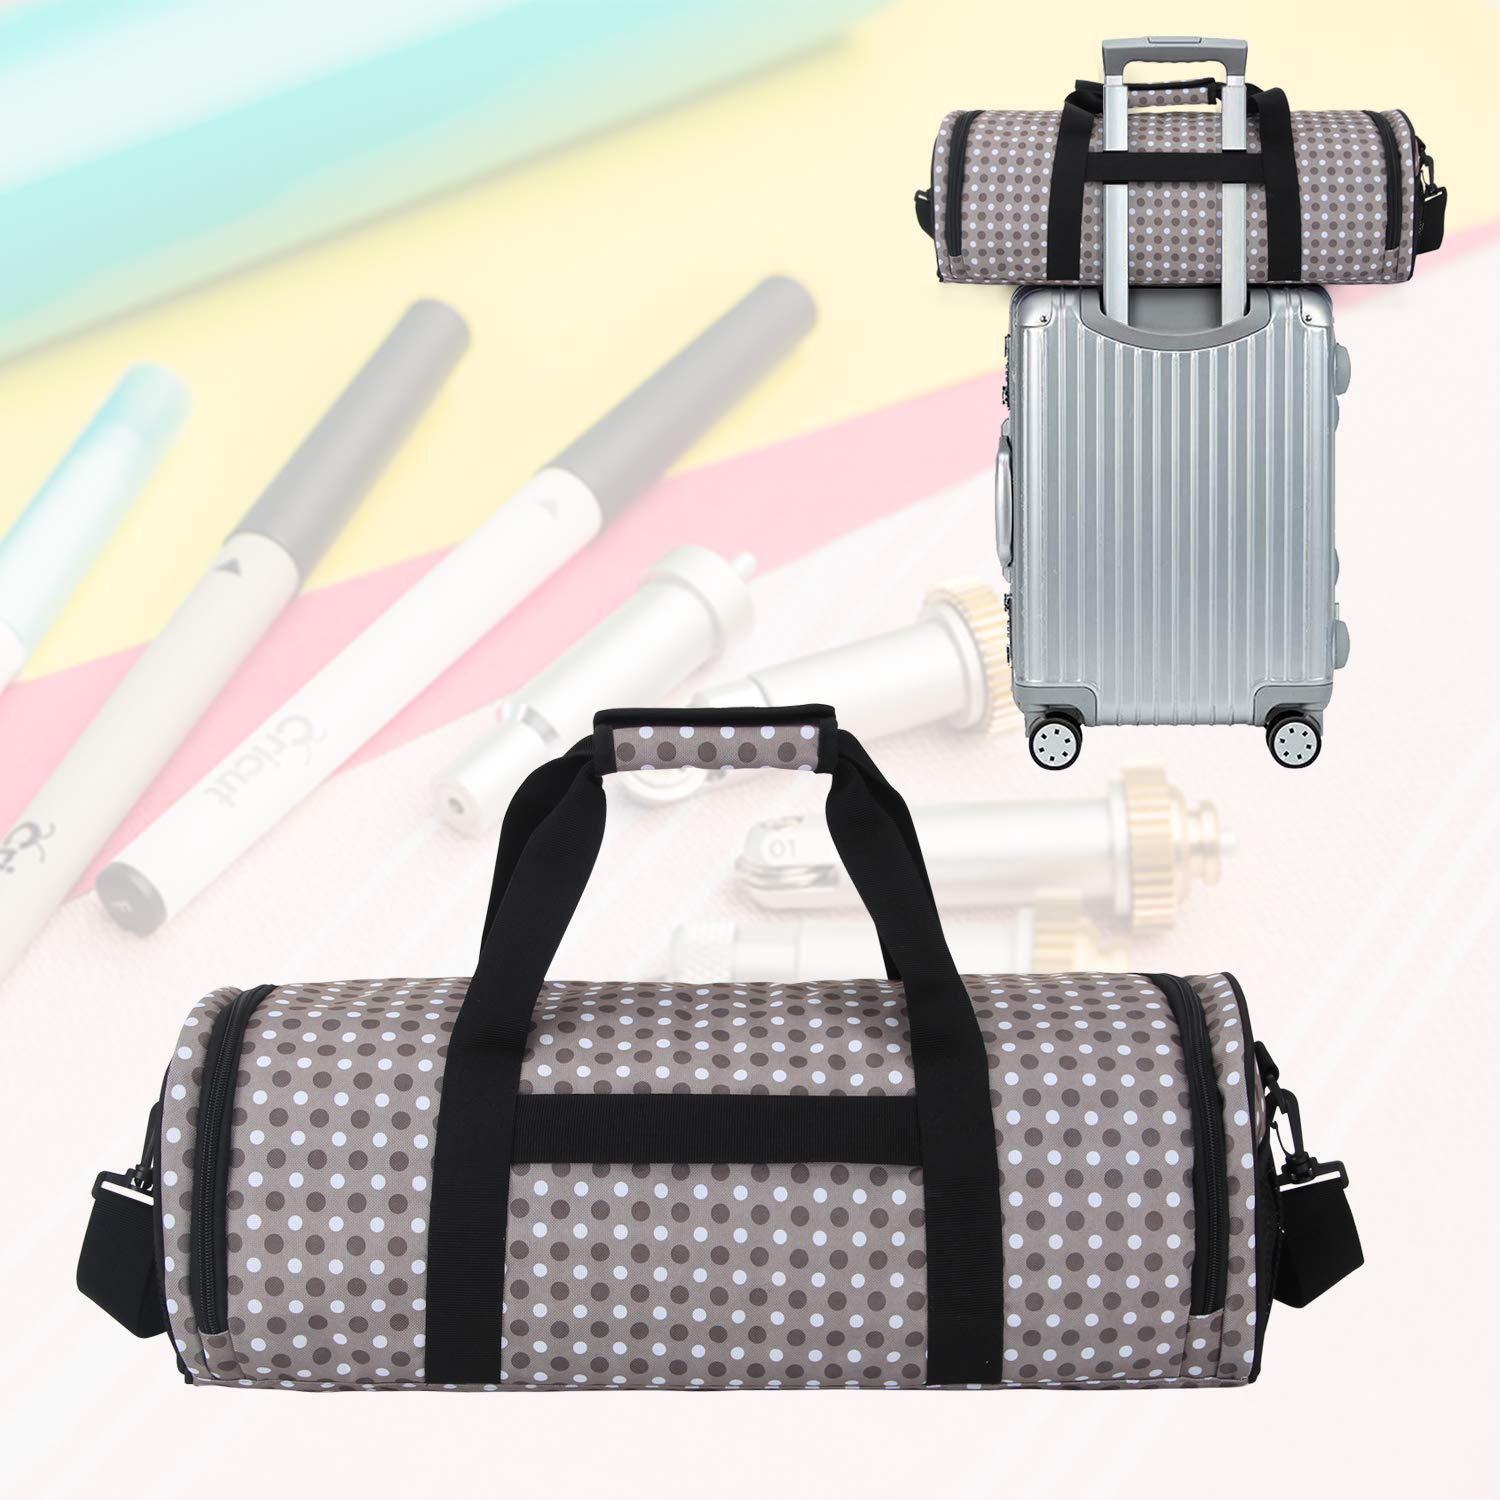 Yarwo Craft Tote Bag Compatible with Cricut Die-cut Machine and Cutting Mat 12 x 12 Gray Dots Cricut Maker and Accessories Travel Carrying Case Compatible with Cricut Explore Air Air 2